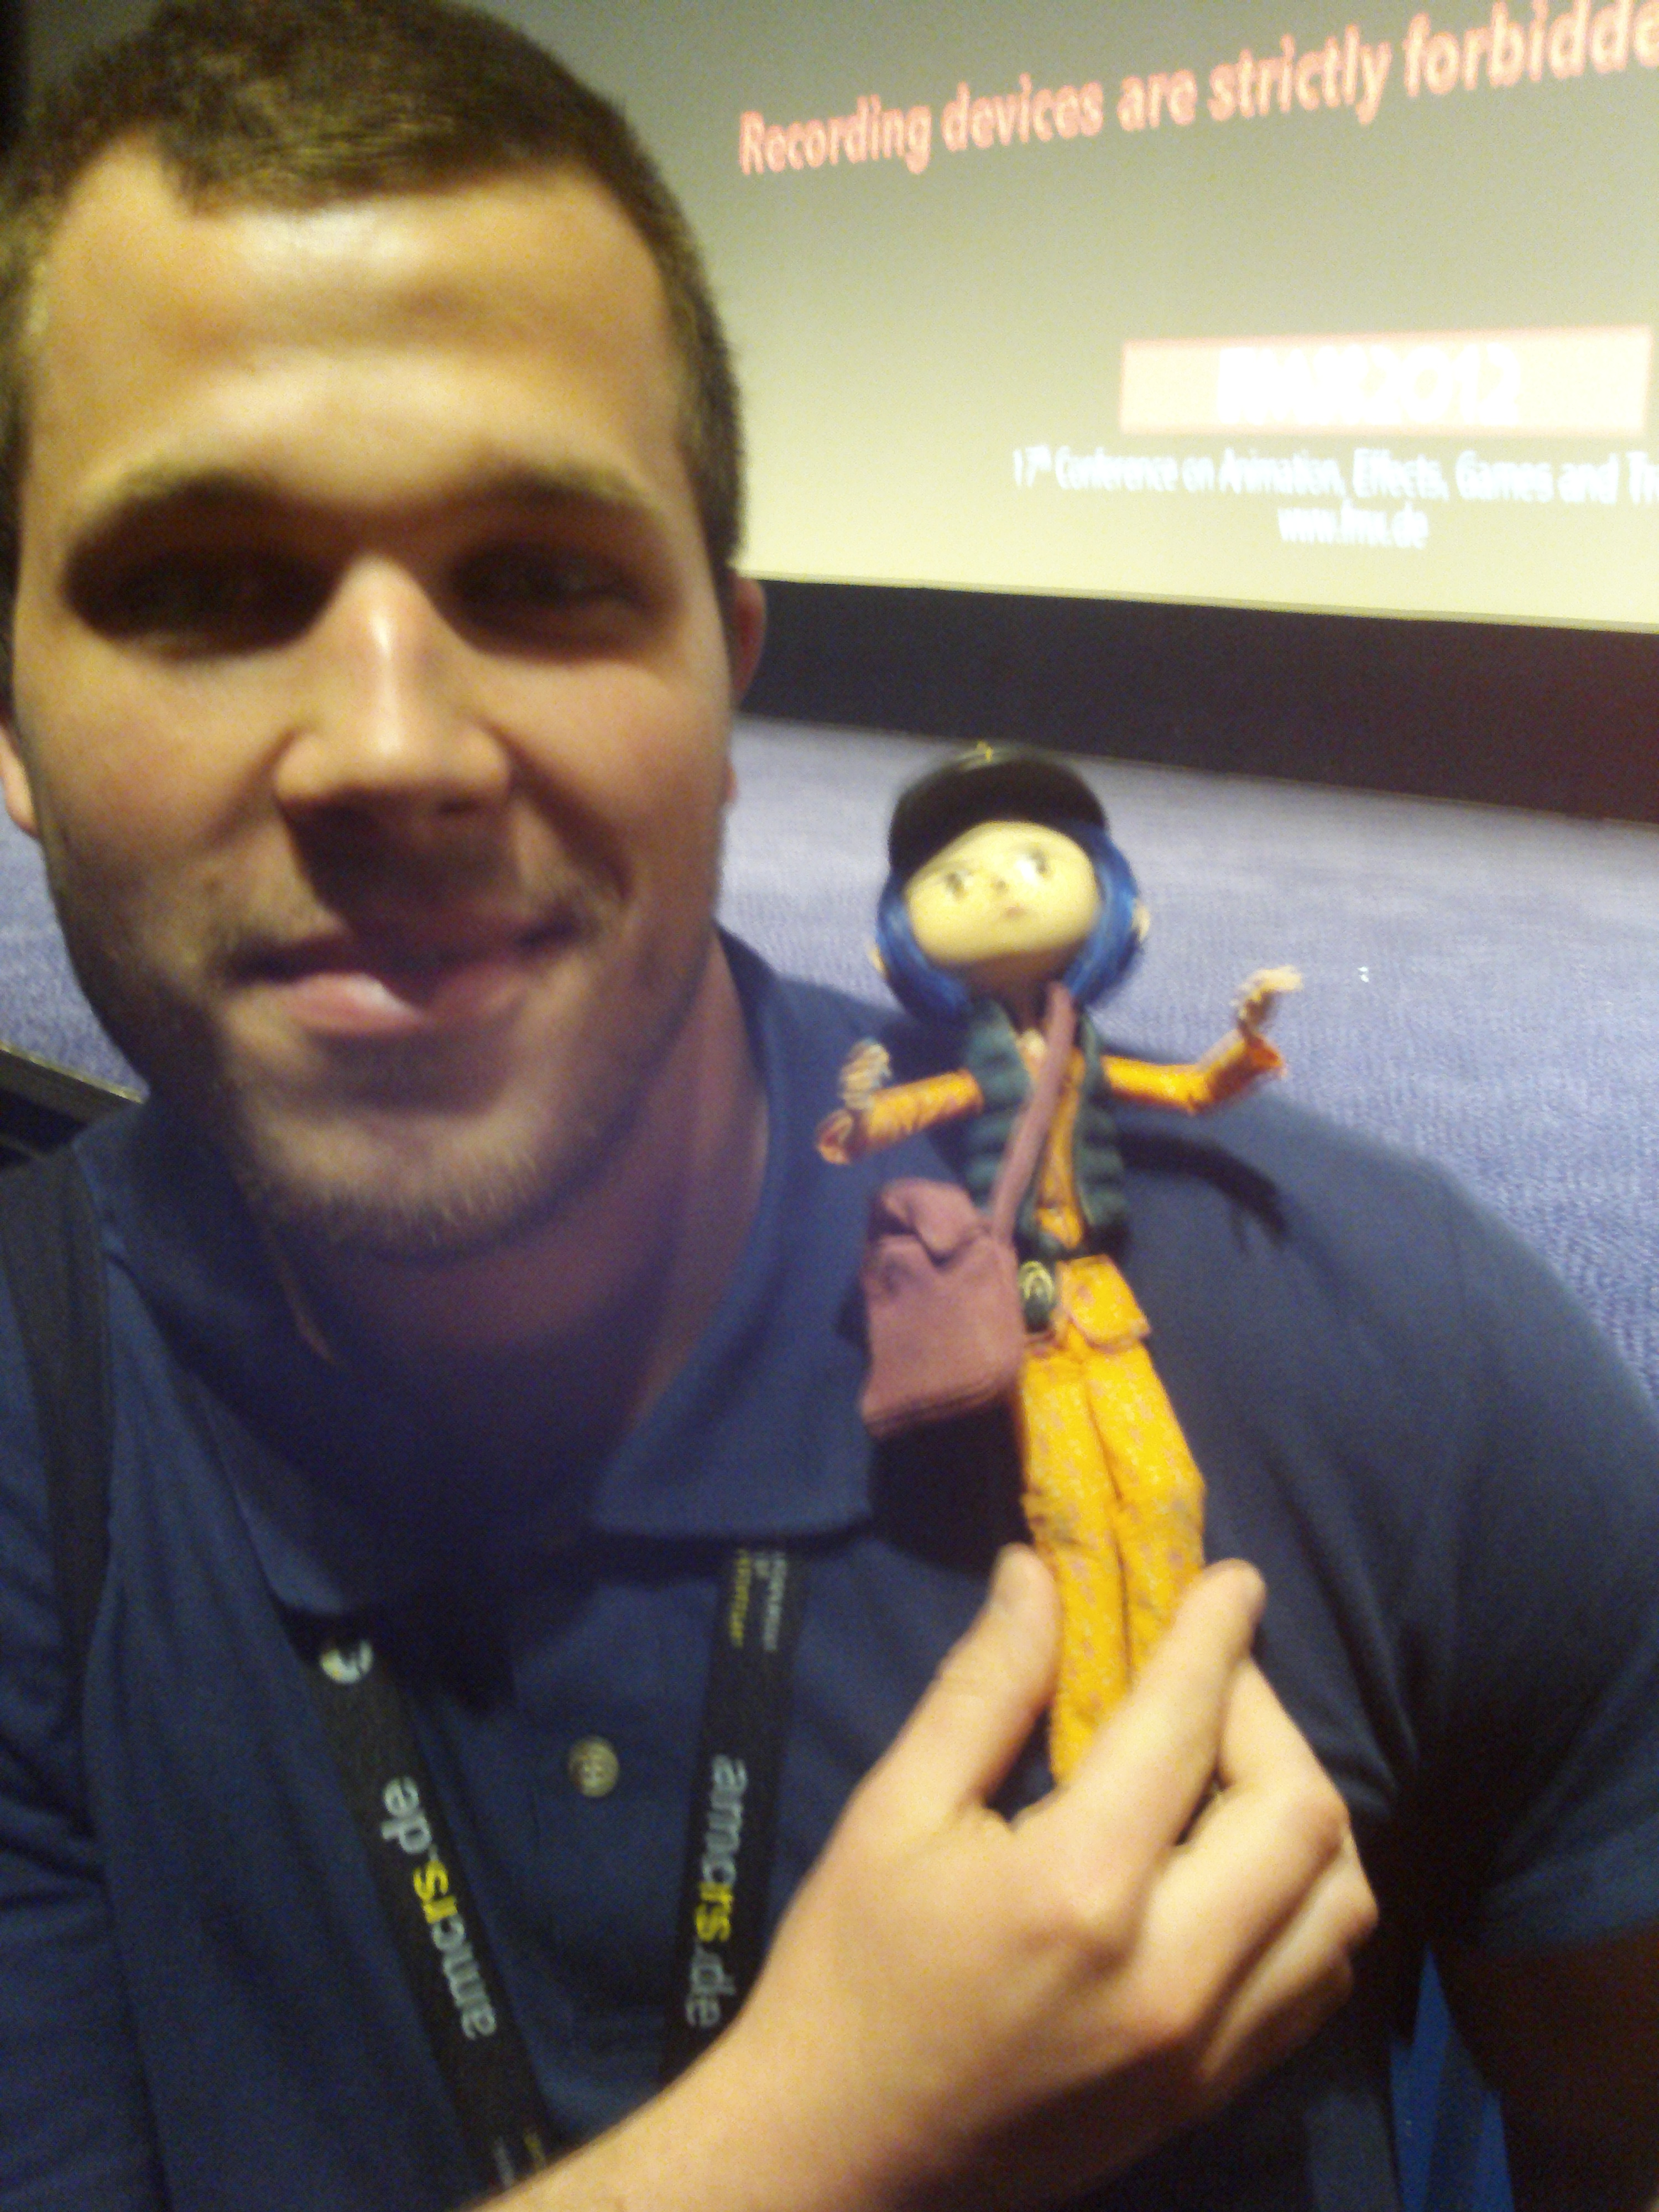 I was thrilled to hug the original Coraline after a great speech at the FMX Conference (Stuttgart 2012).